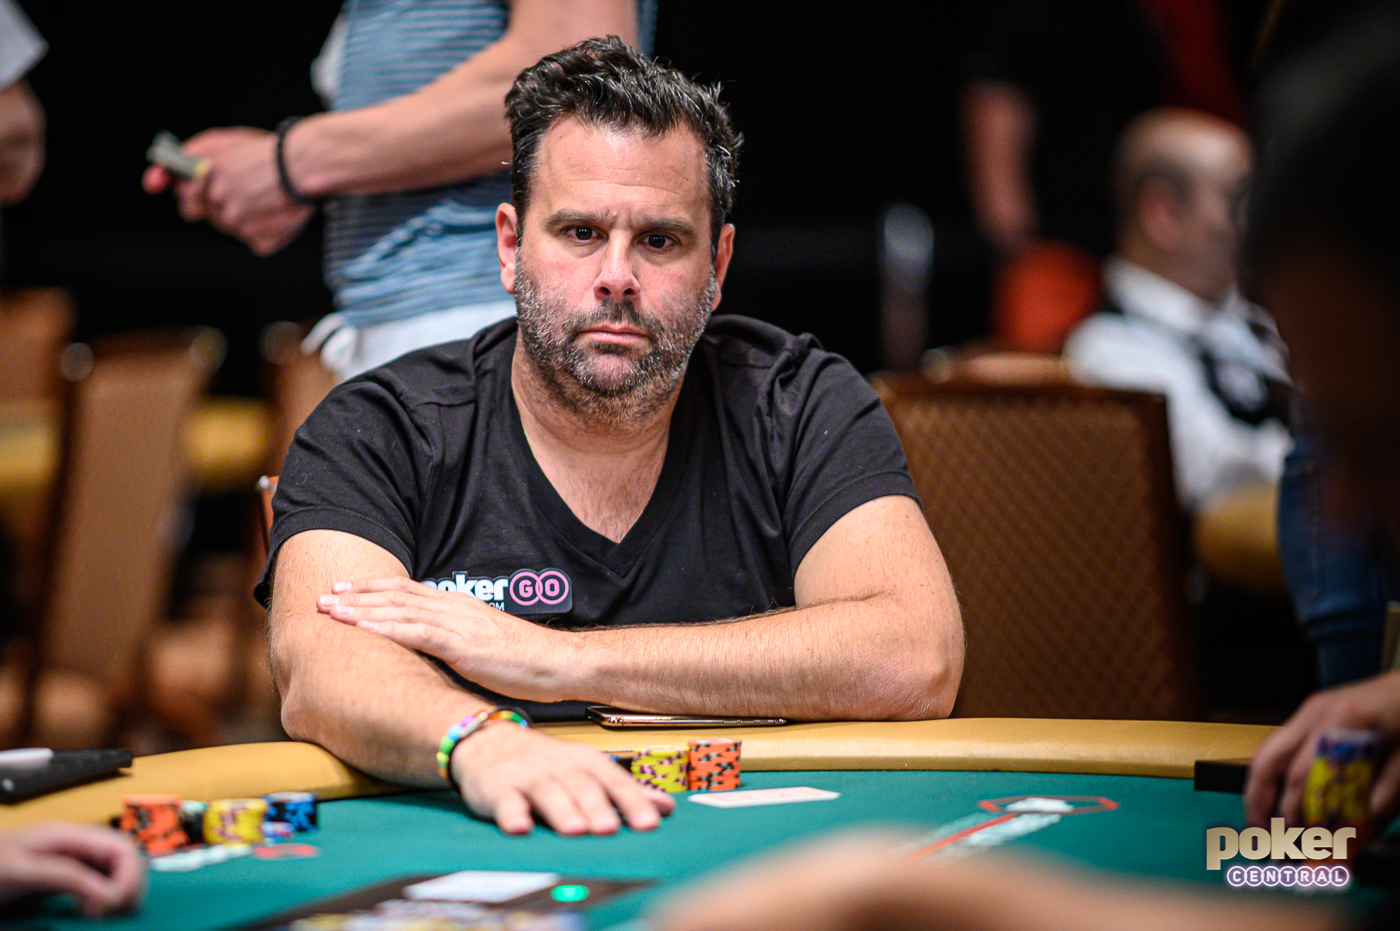 Focused and determined: Randall Emmett during the $5,000 No Limit Hold'em event at the 2019 WSOP.